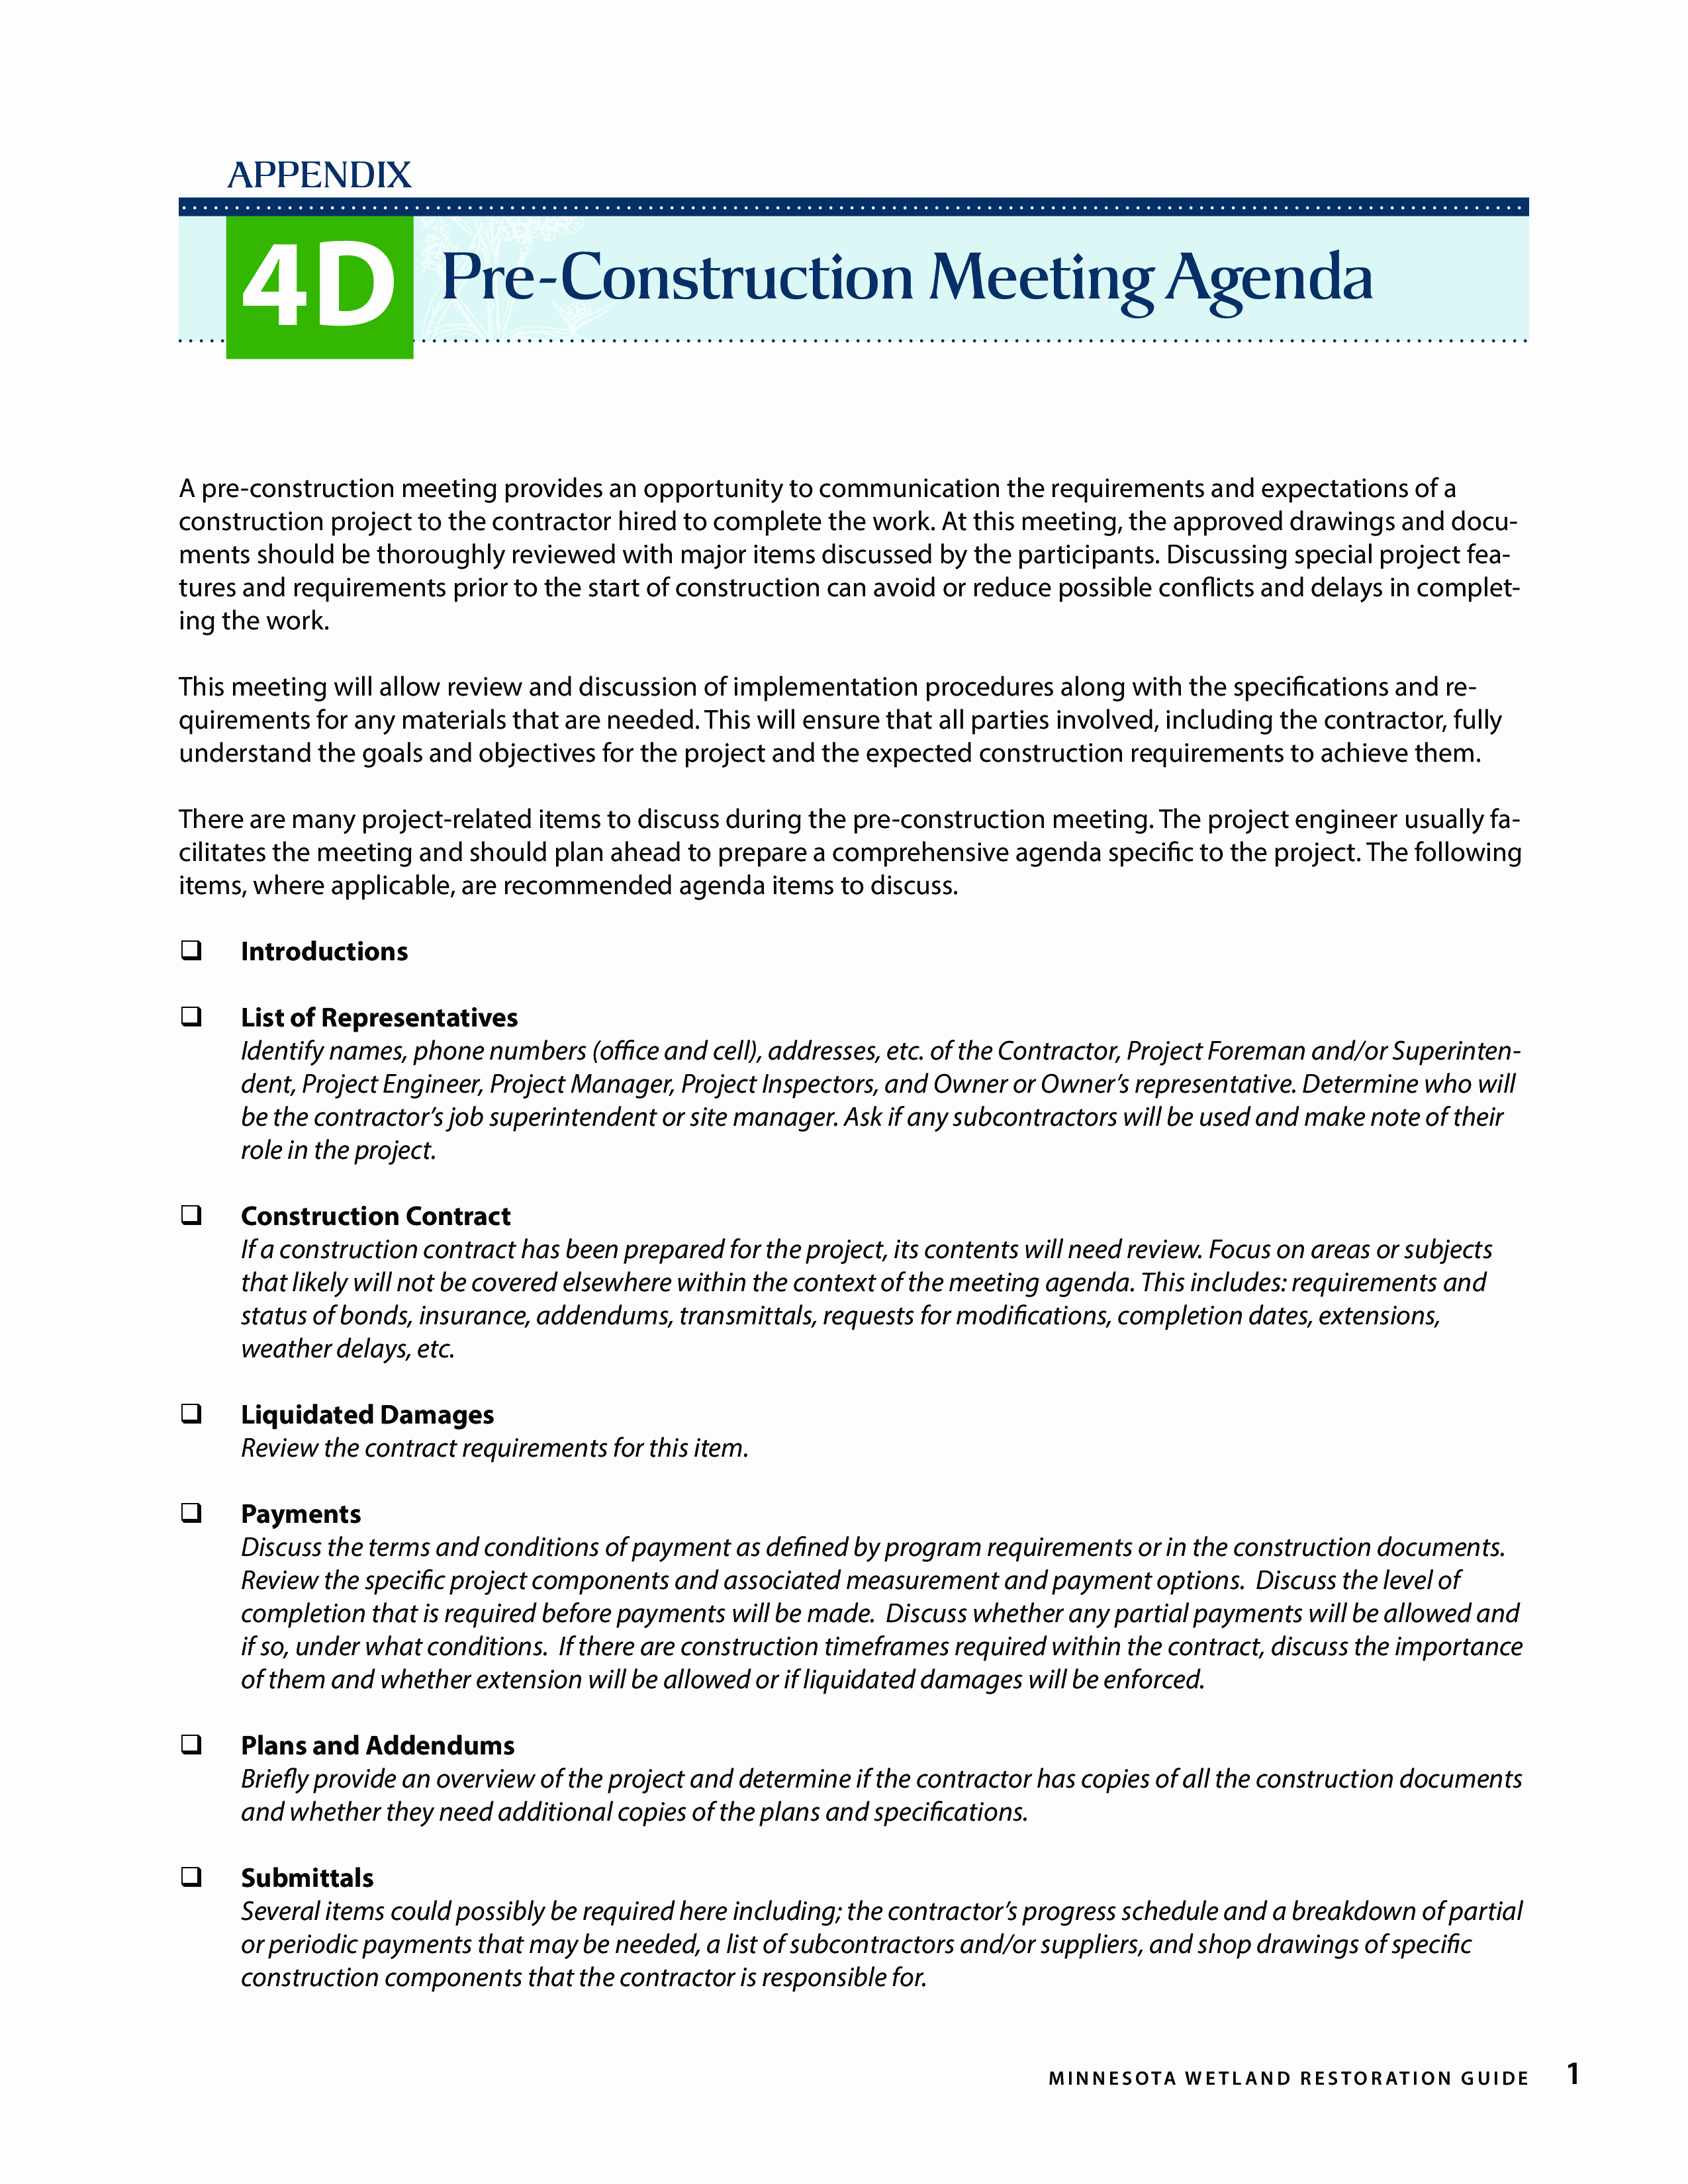 Construction Meeting Agenda Template Inspirational Free Pre Construction Meeting Agenda